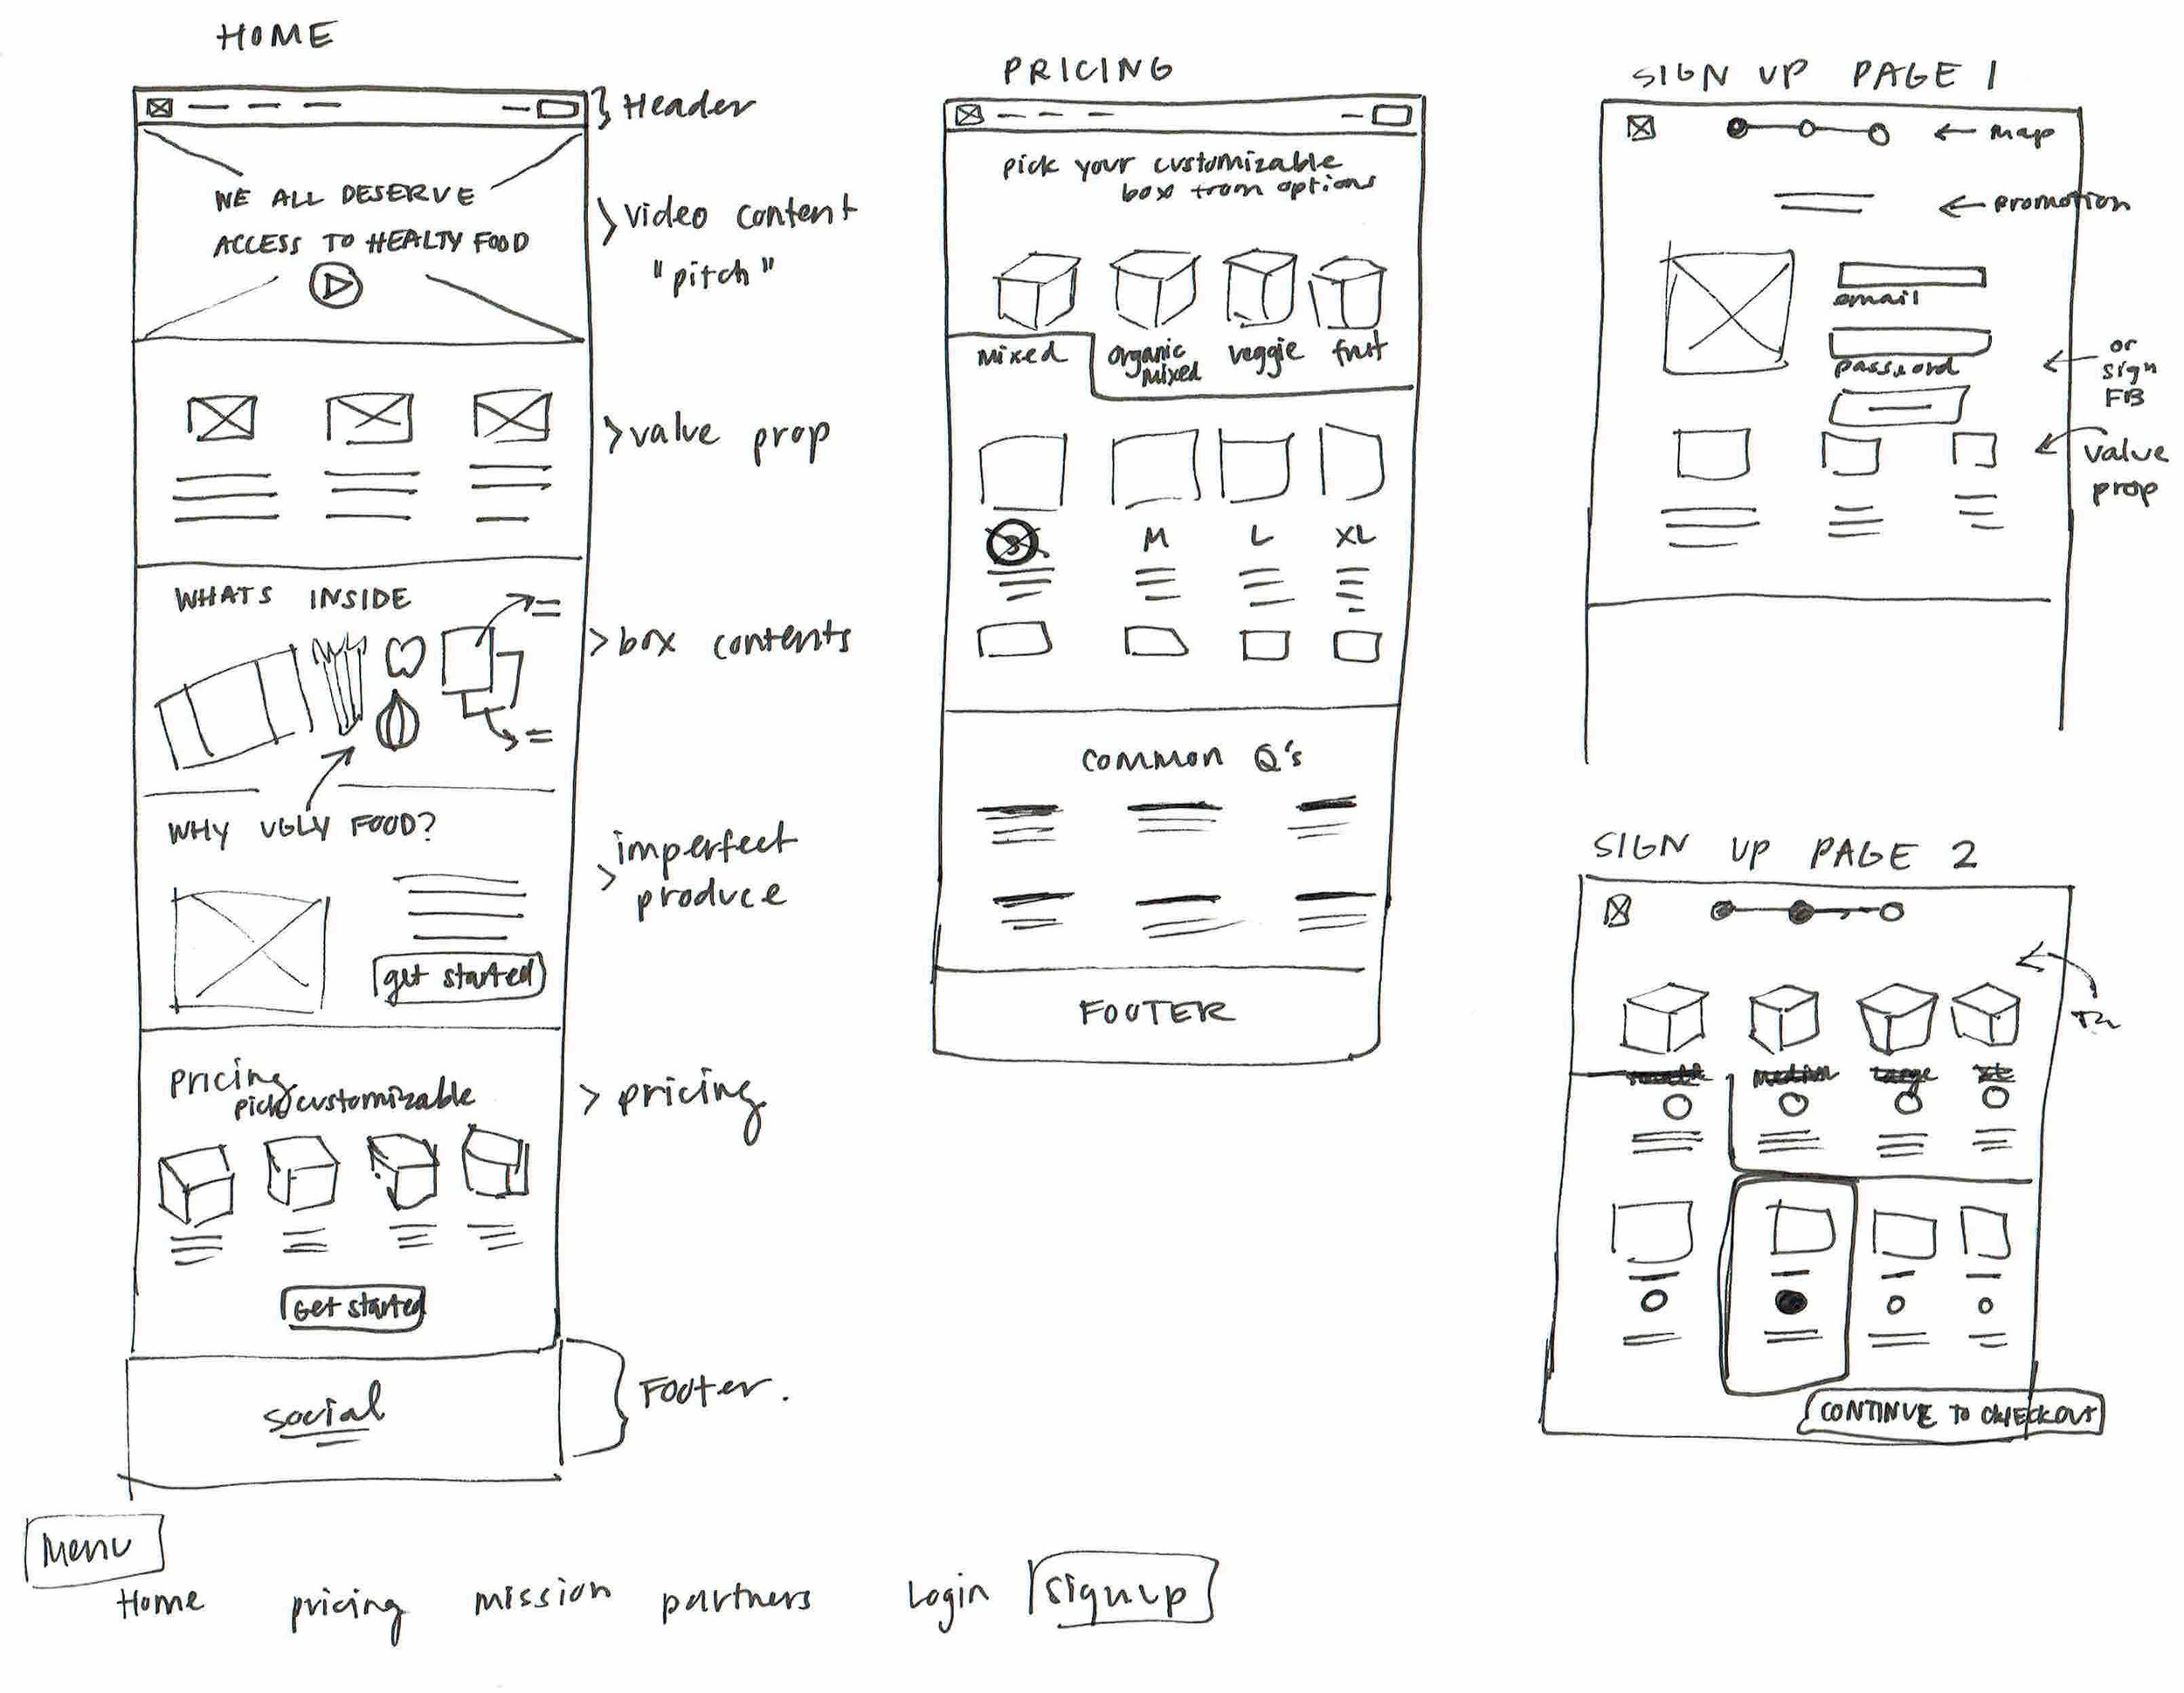 WIREFRAMES & USER FLOWS:  I used wireframes and user flows to design the responsive website.